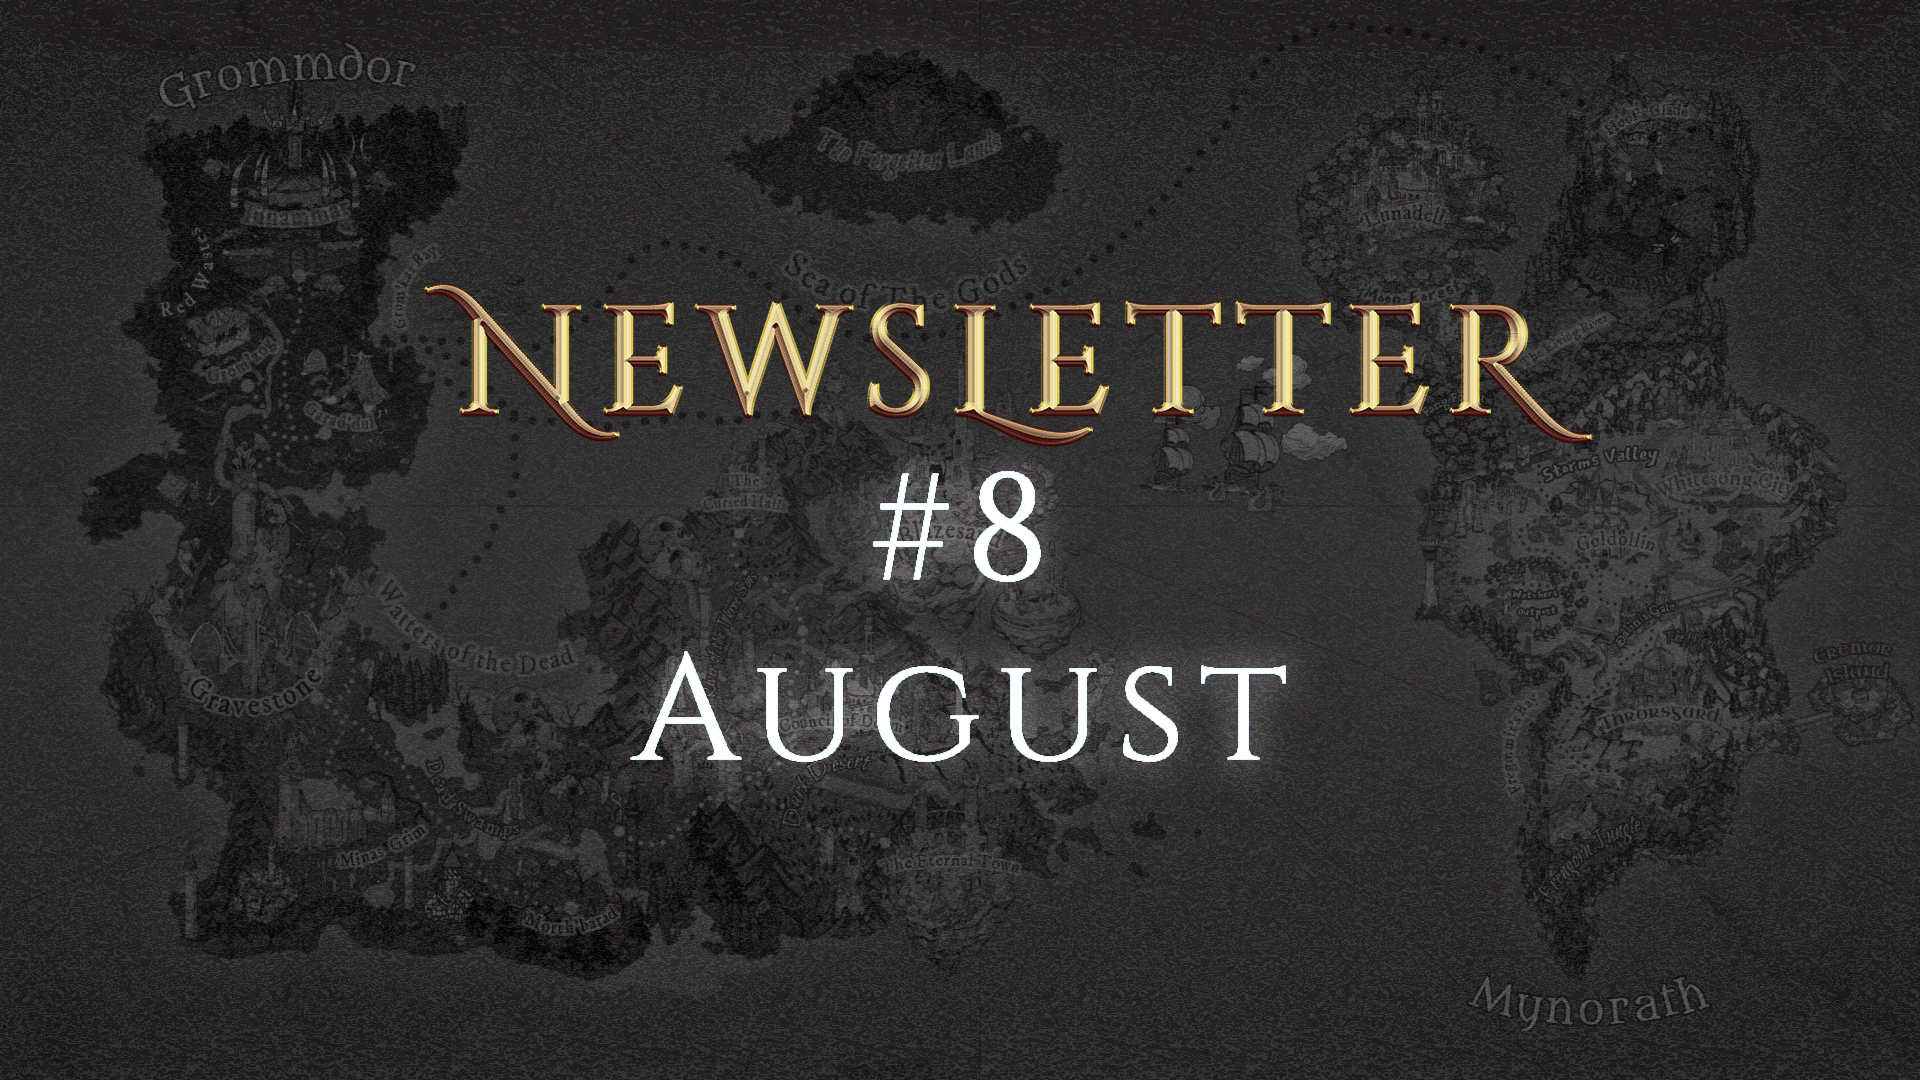 Monthly Newsletter #8 - August